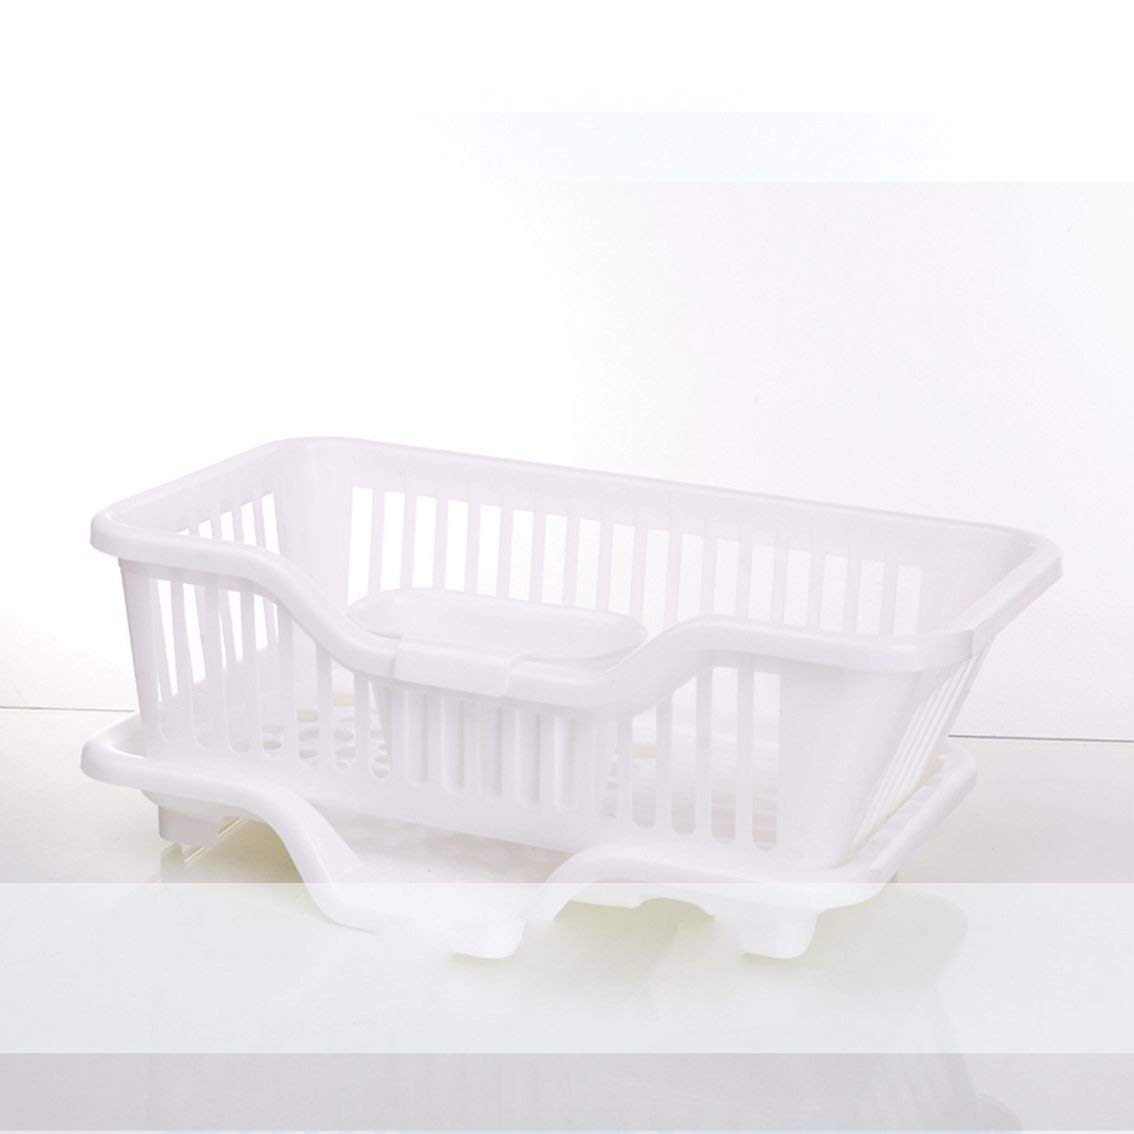 jii2030shann Kitchen glove planes supplies tableware bowl put housing frame drain frame sub-cupboard plastic dishes racks shelving dish rack shelving cupboard cutlery cupboard